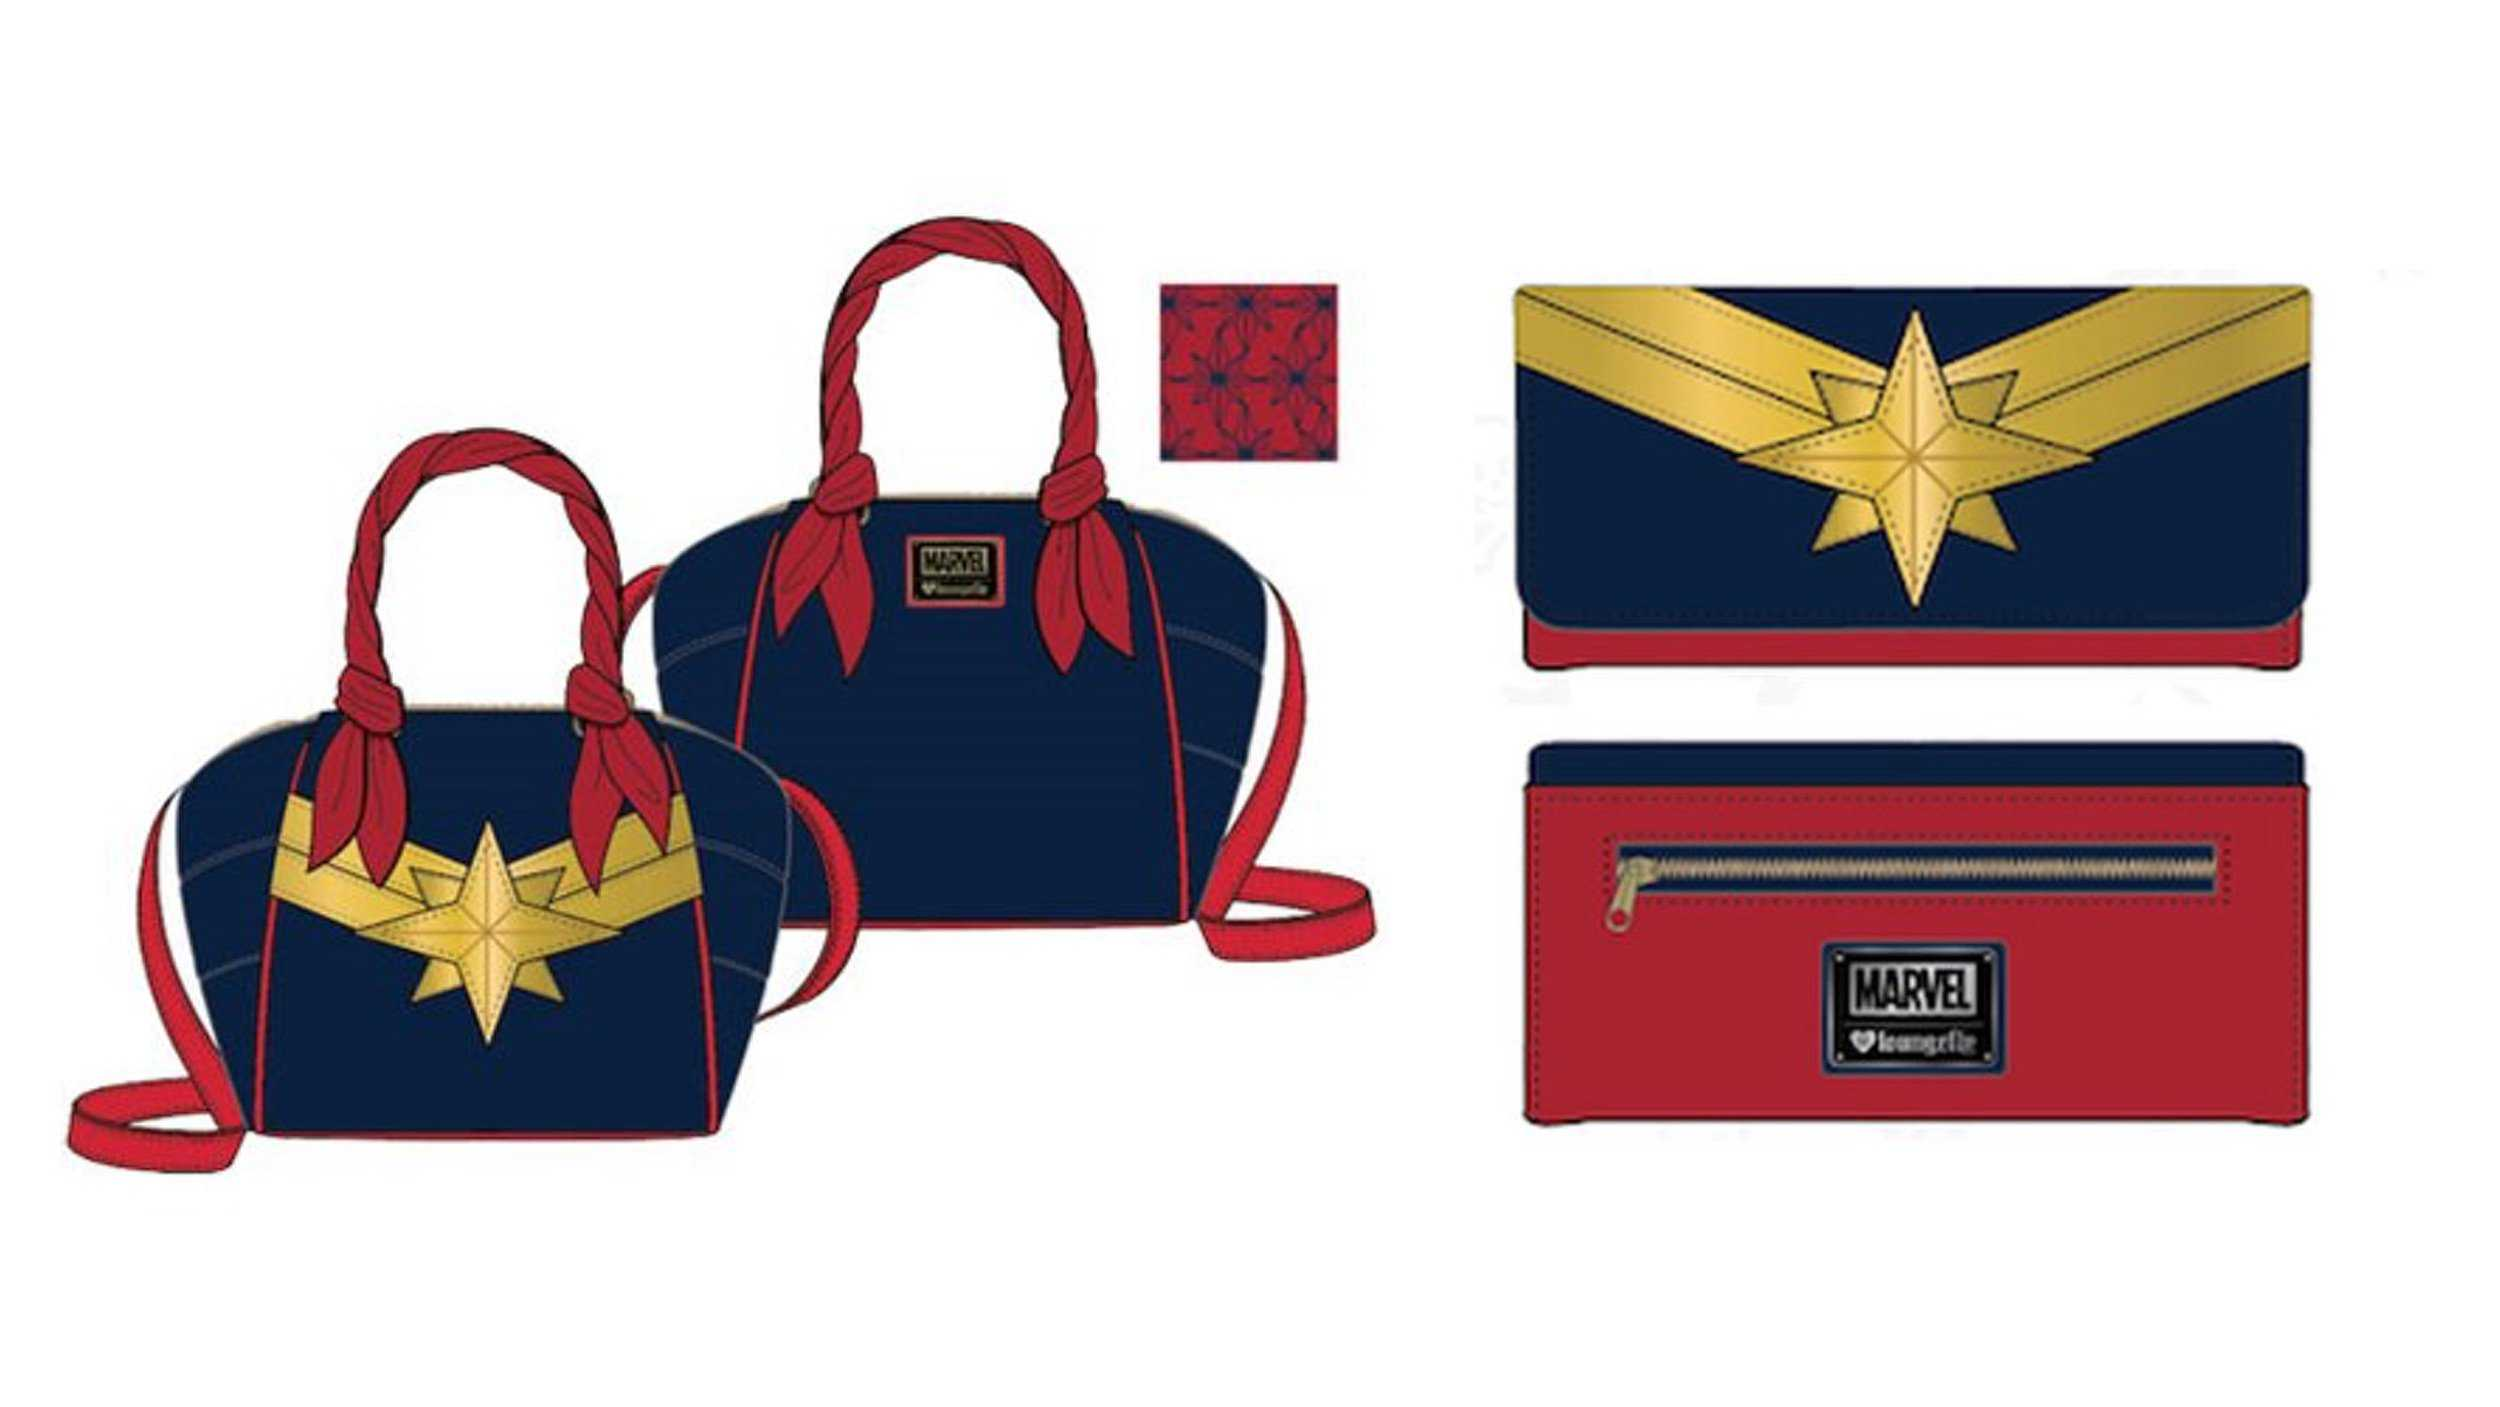 vamers-geekosphere-lifestyle-fashion-these-gorgeous-loungefly-bags-are-inspired-by-marvel-heroines-loungefly-bag-and-purse-inspired-by-captain-marvel